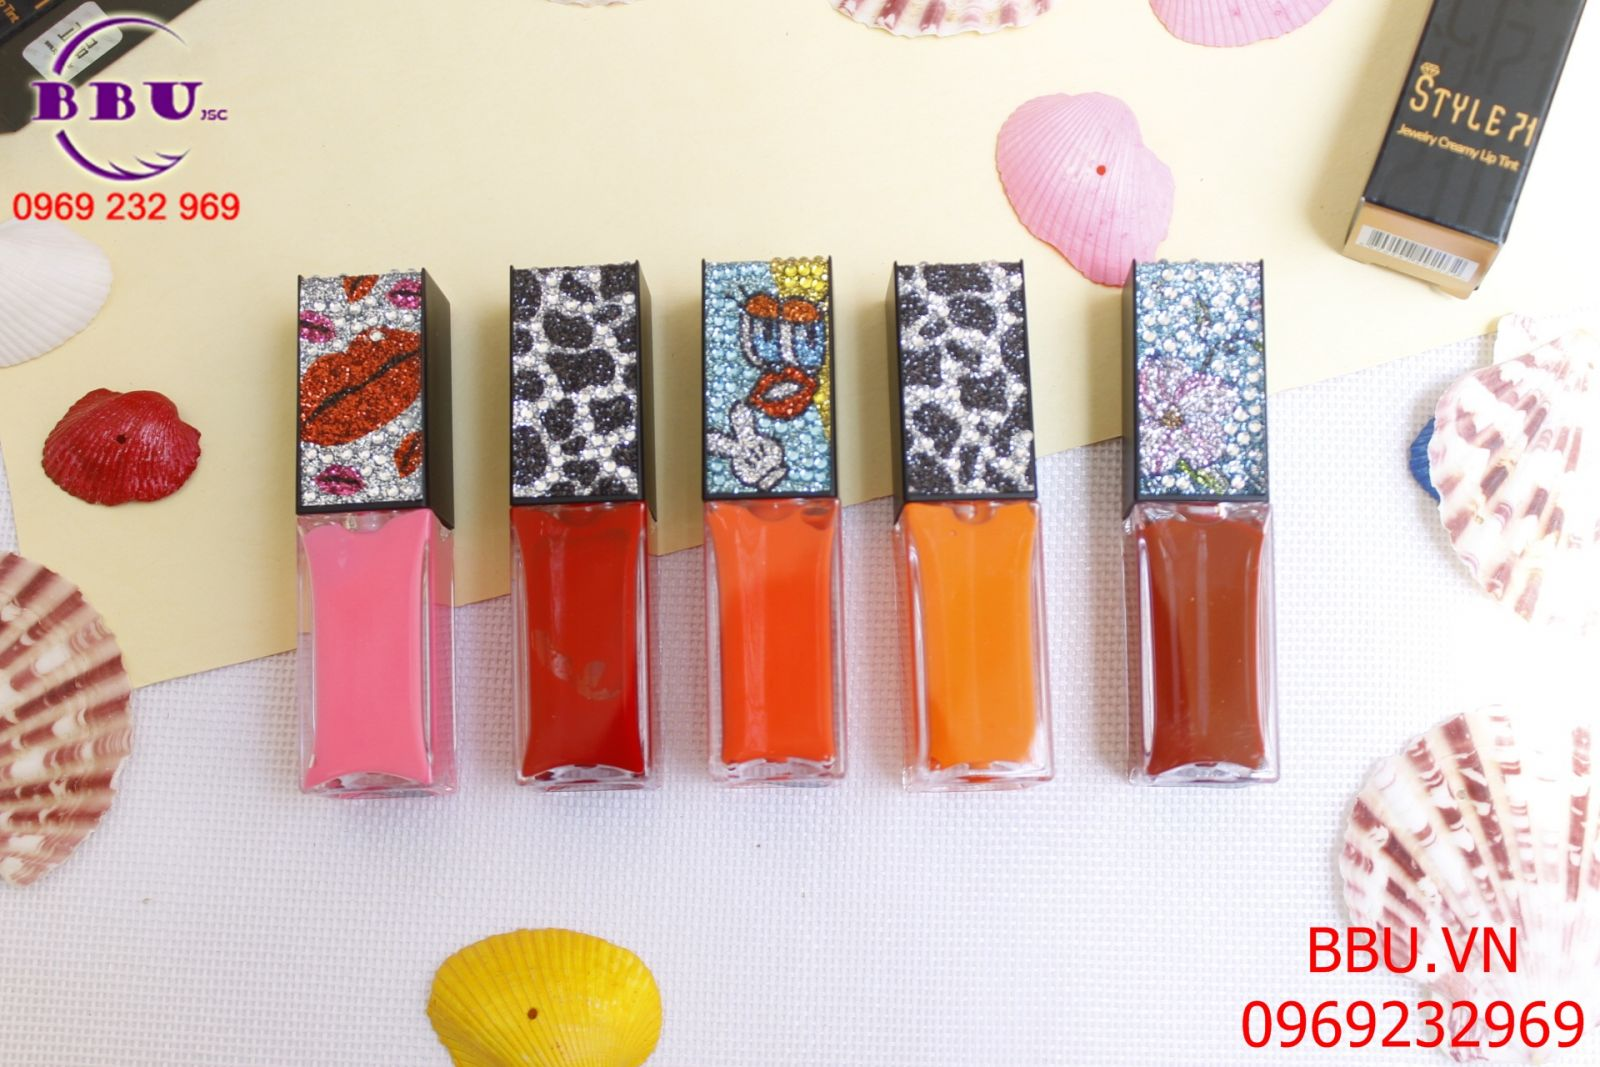 SON TINT STYLE 71 JEWELRY CREAM LIP TINT